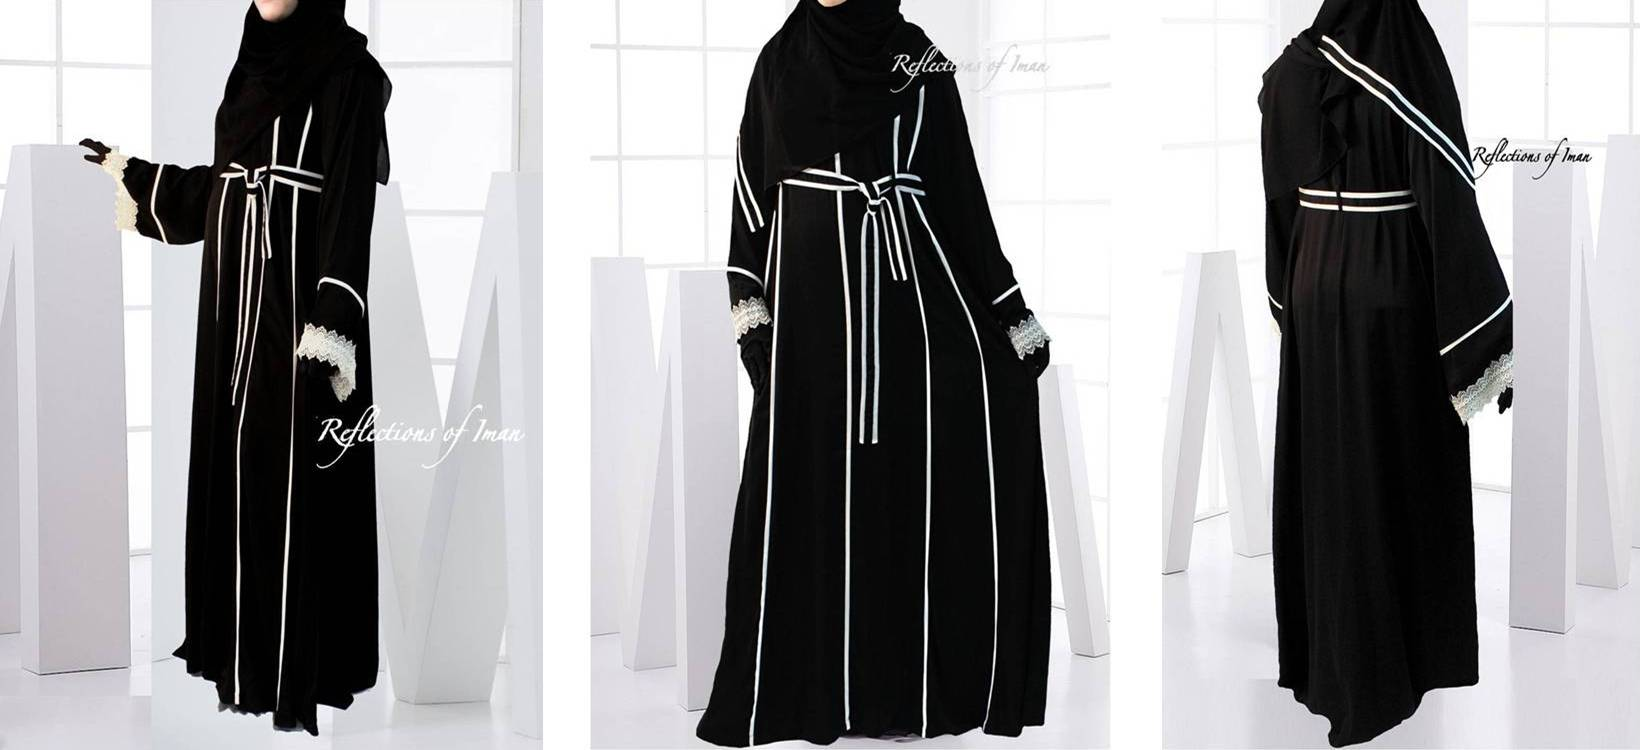 Abayas at Reflections of Iman Popup Shop